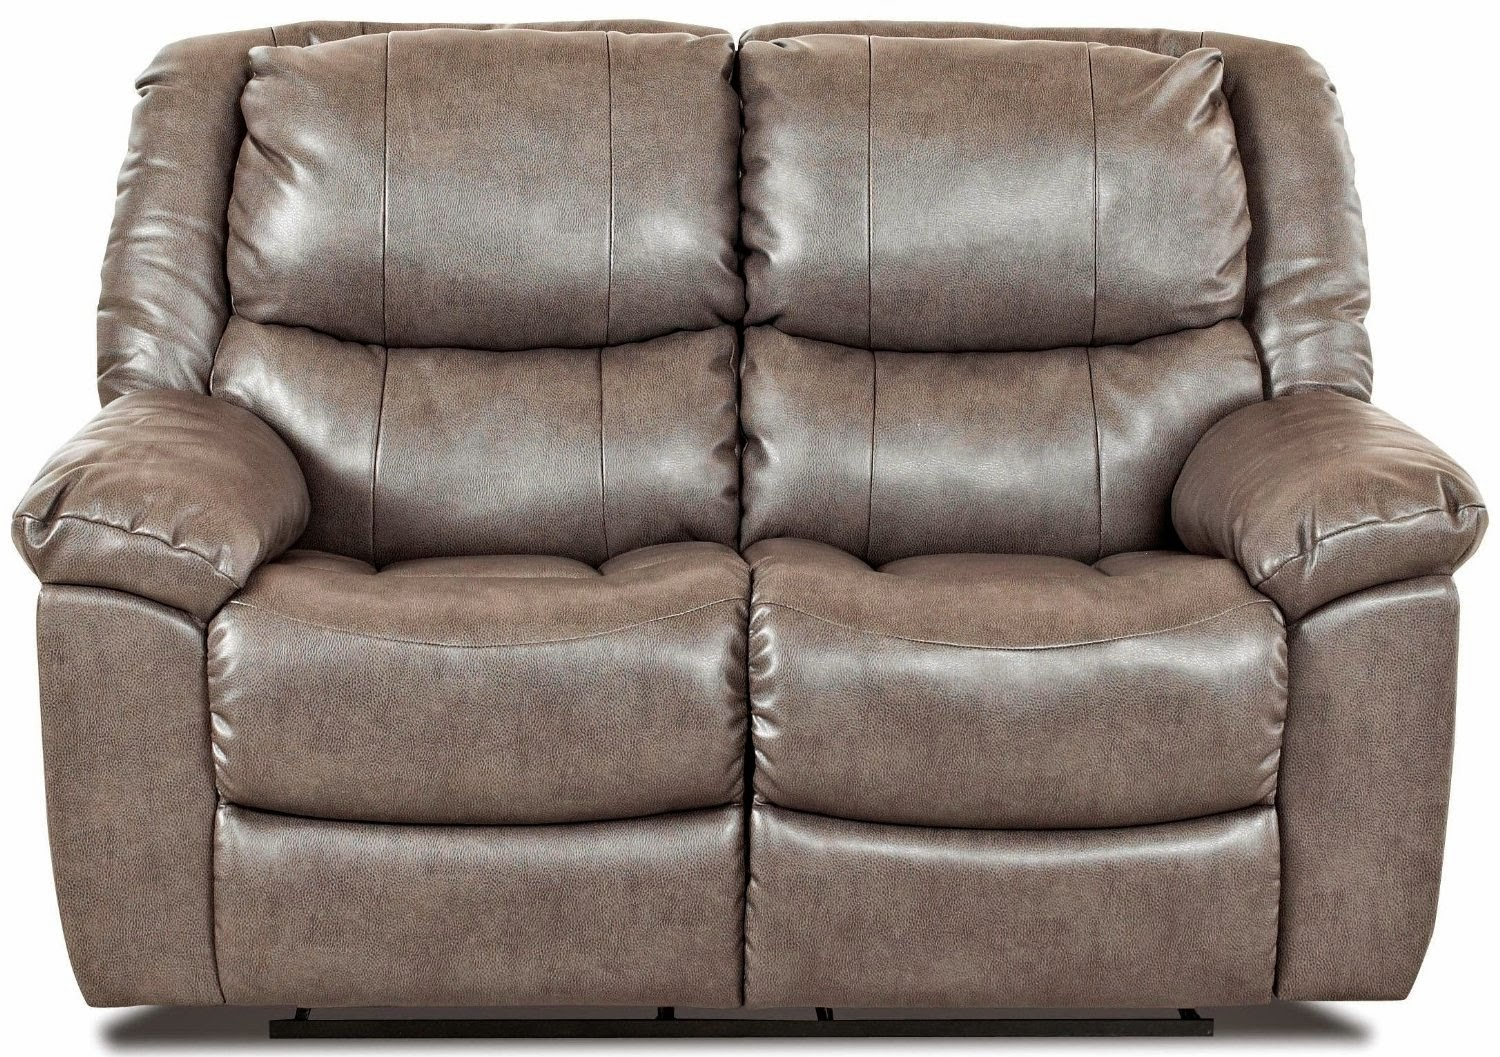 Best Reclining Sofa For The Money Klaussner Bonded Leather Reclining Sofa